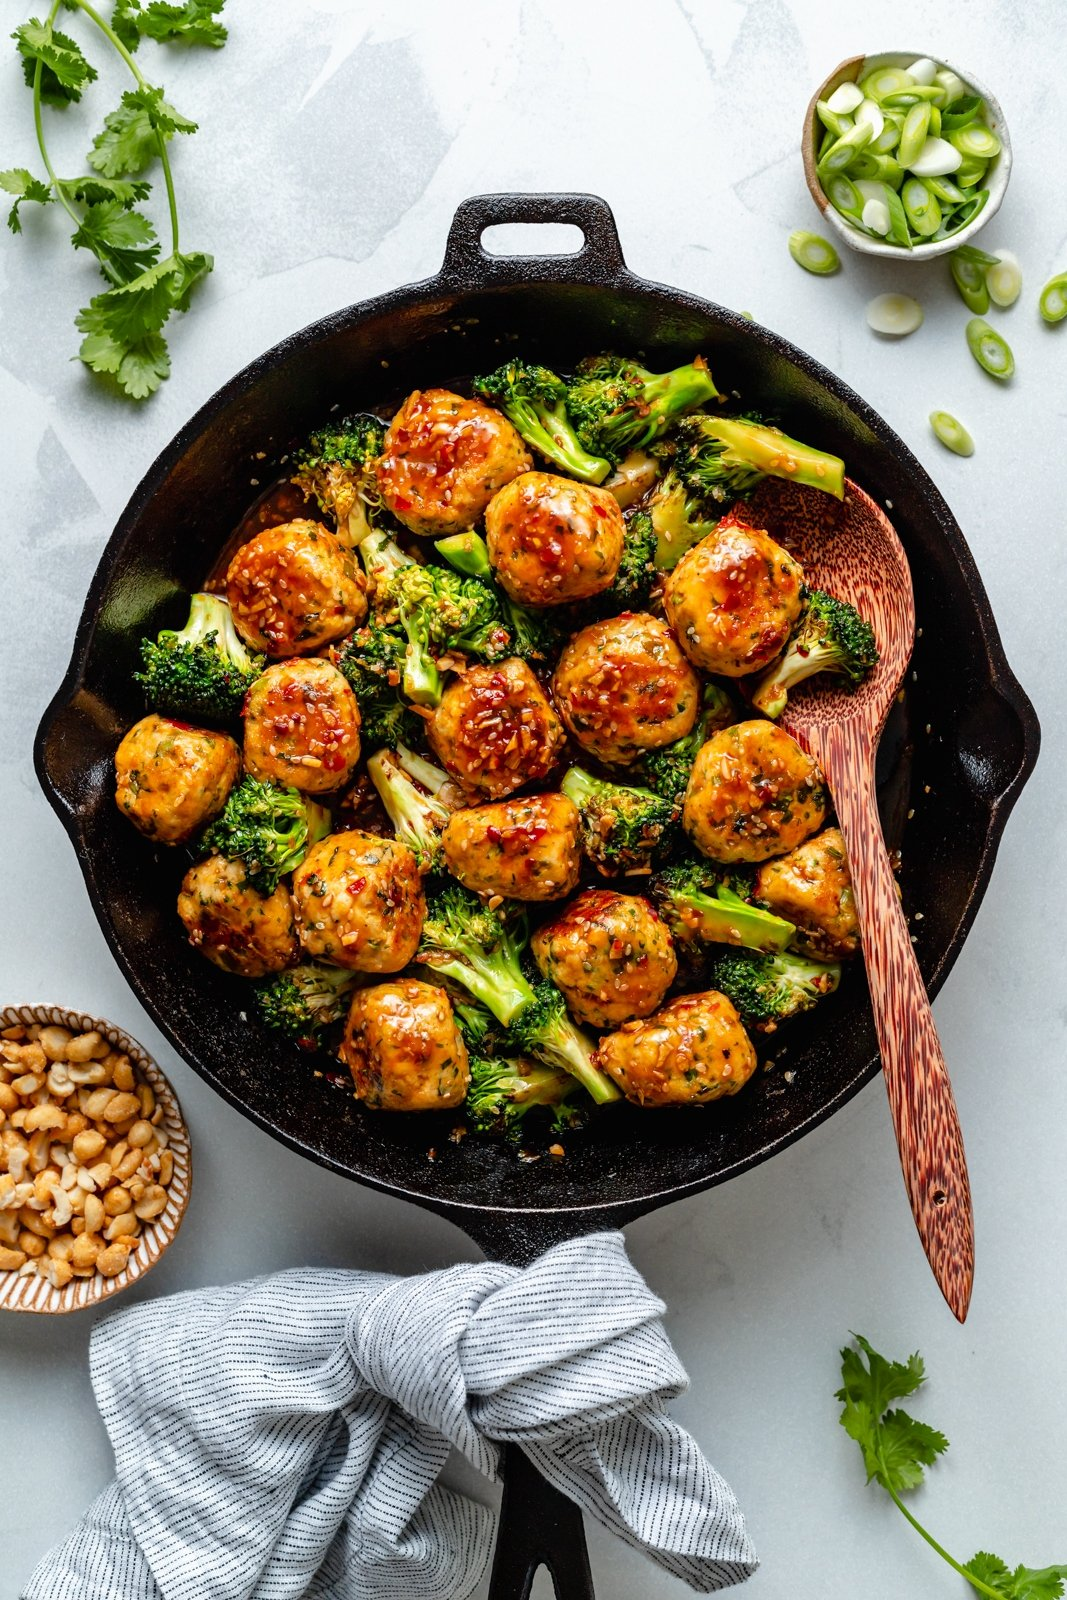 ginger sesame chicken meatballs and broccoli in a skillet